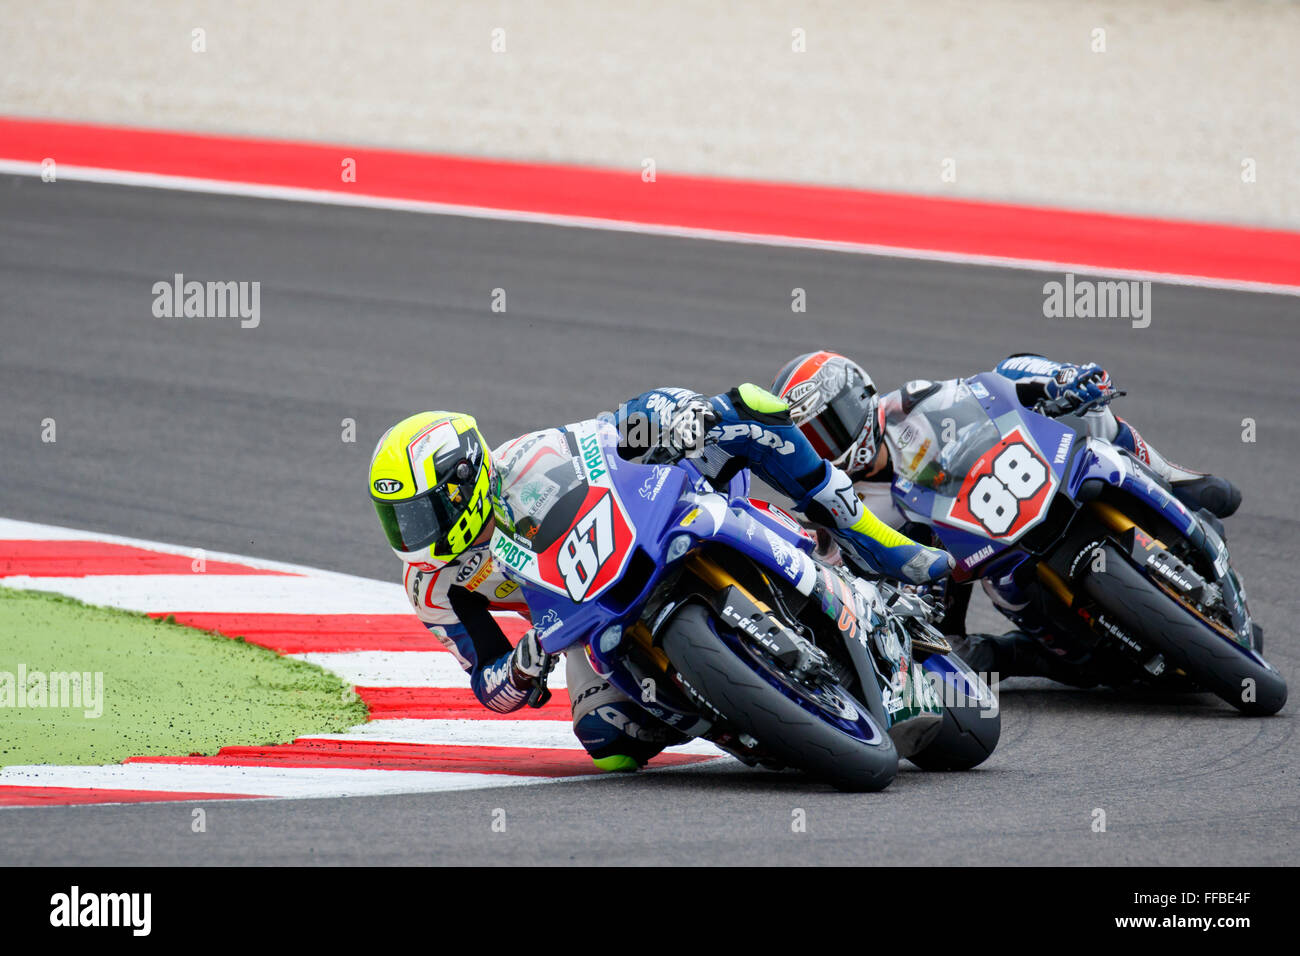 Misano Adriatico, Italy - June 20, 2015: Yamaha YZF R1 of Team Trasimeno, driven by MARCONI Luca Stock Photo